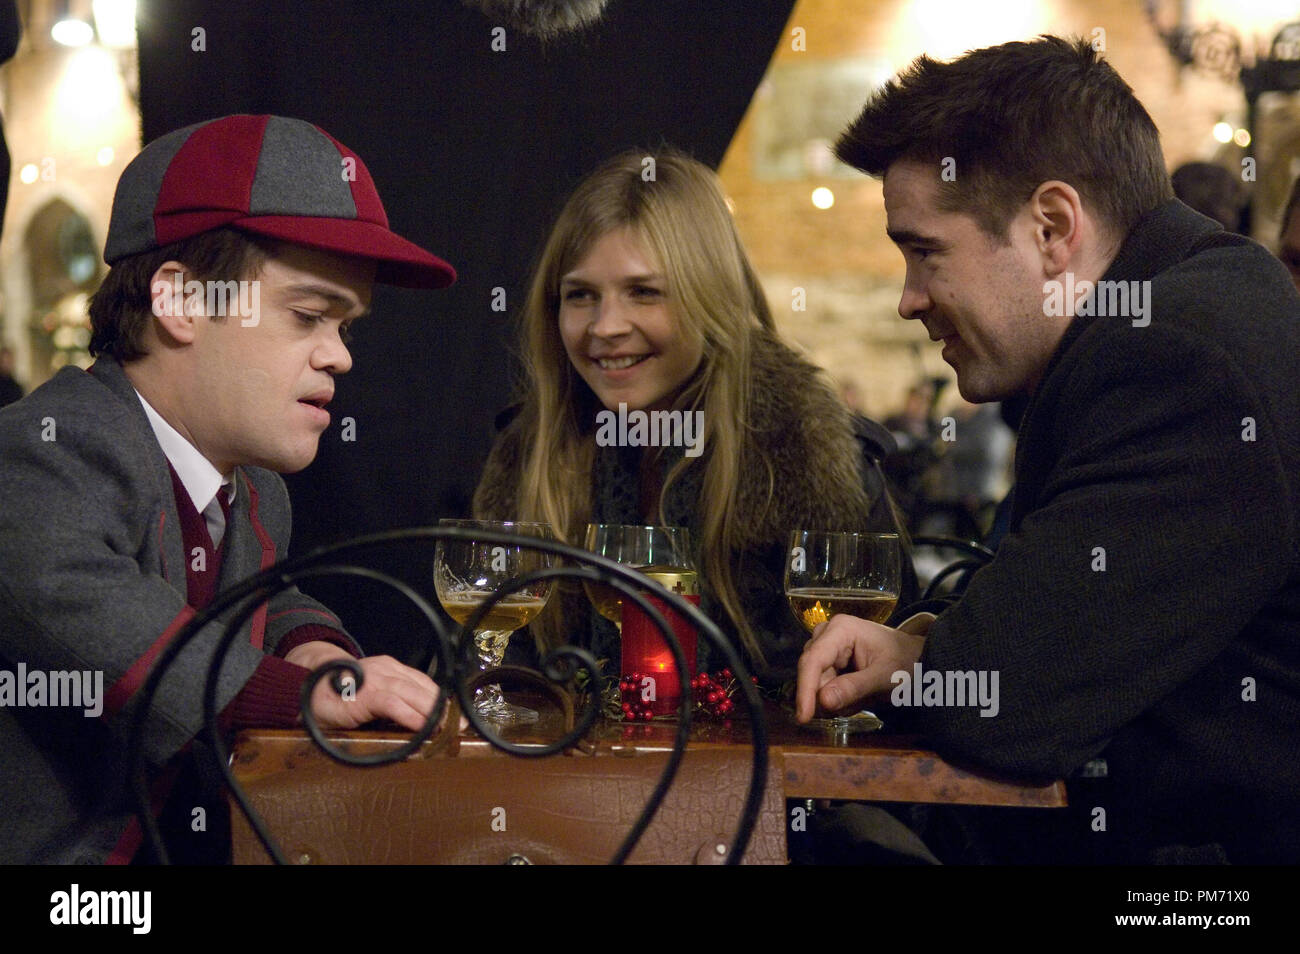 Film Still from 'In Bruges' Jordan Prentice, Clemence Poesy, Colin Farrell © 2008 Focus Features Photo credit: Jaap Buitendijk  File Reference # 30755252THA  For Editorial Use Only -  All Rights Reserved - Stock Image